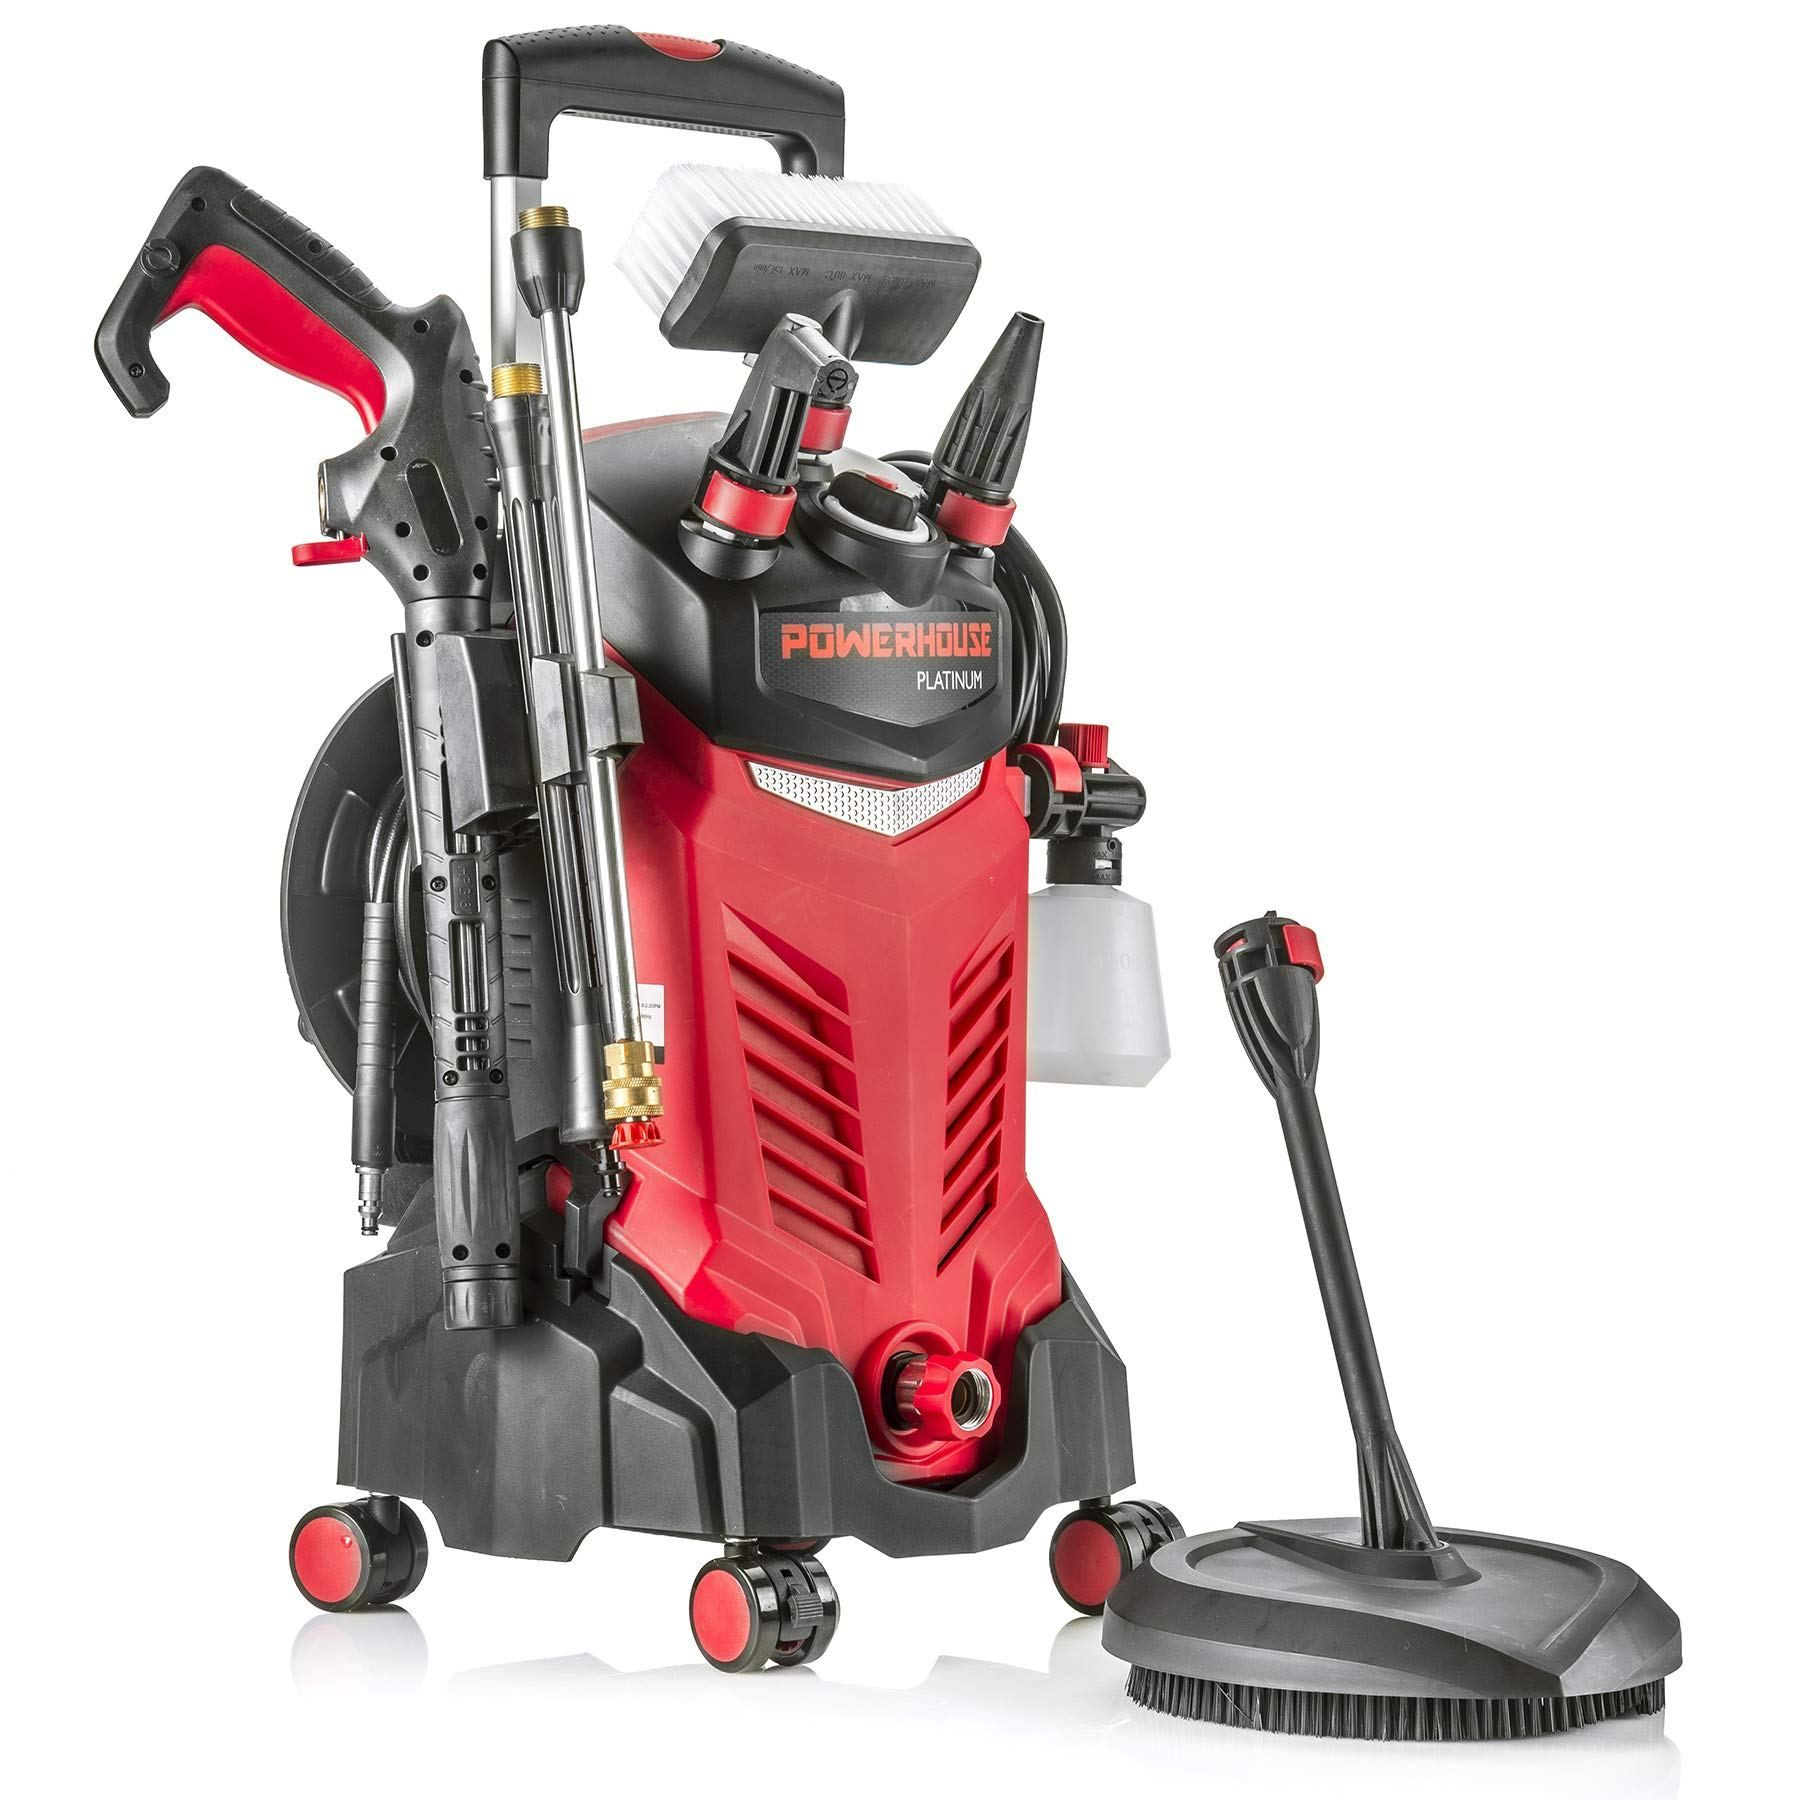 Boughtagain Awesome Goods You Bought It Again Best Pressure Washer Pressure Washer Electric Pressure Washer